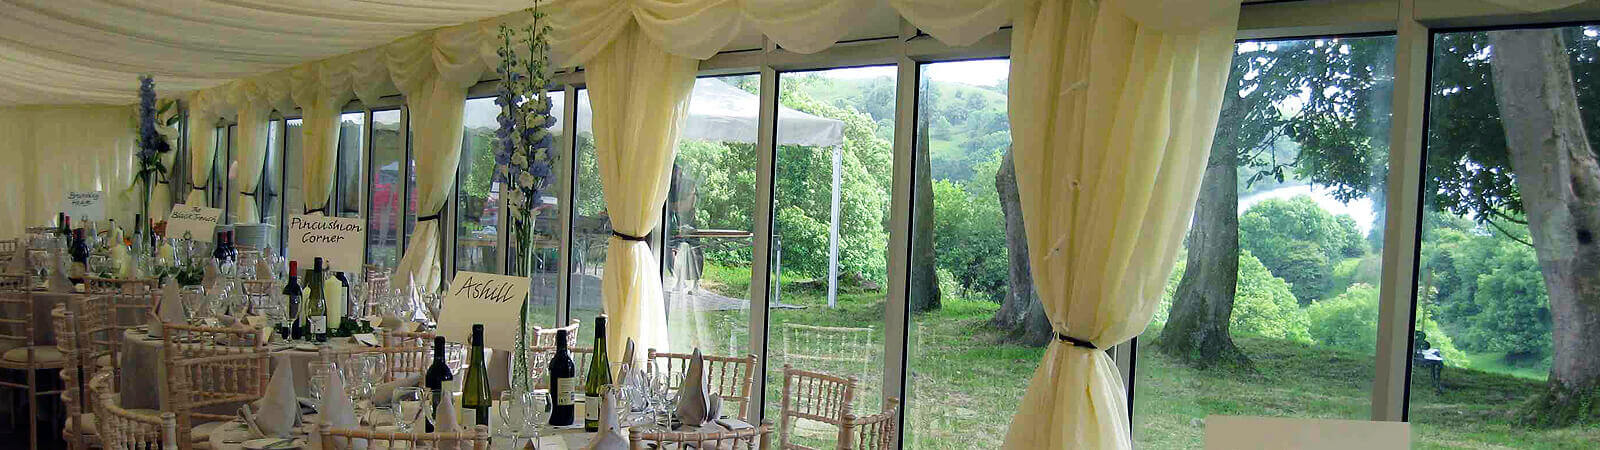 Marquee Hire Limerick for weddings, celebrations & corporate events